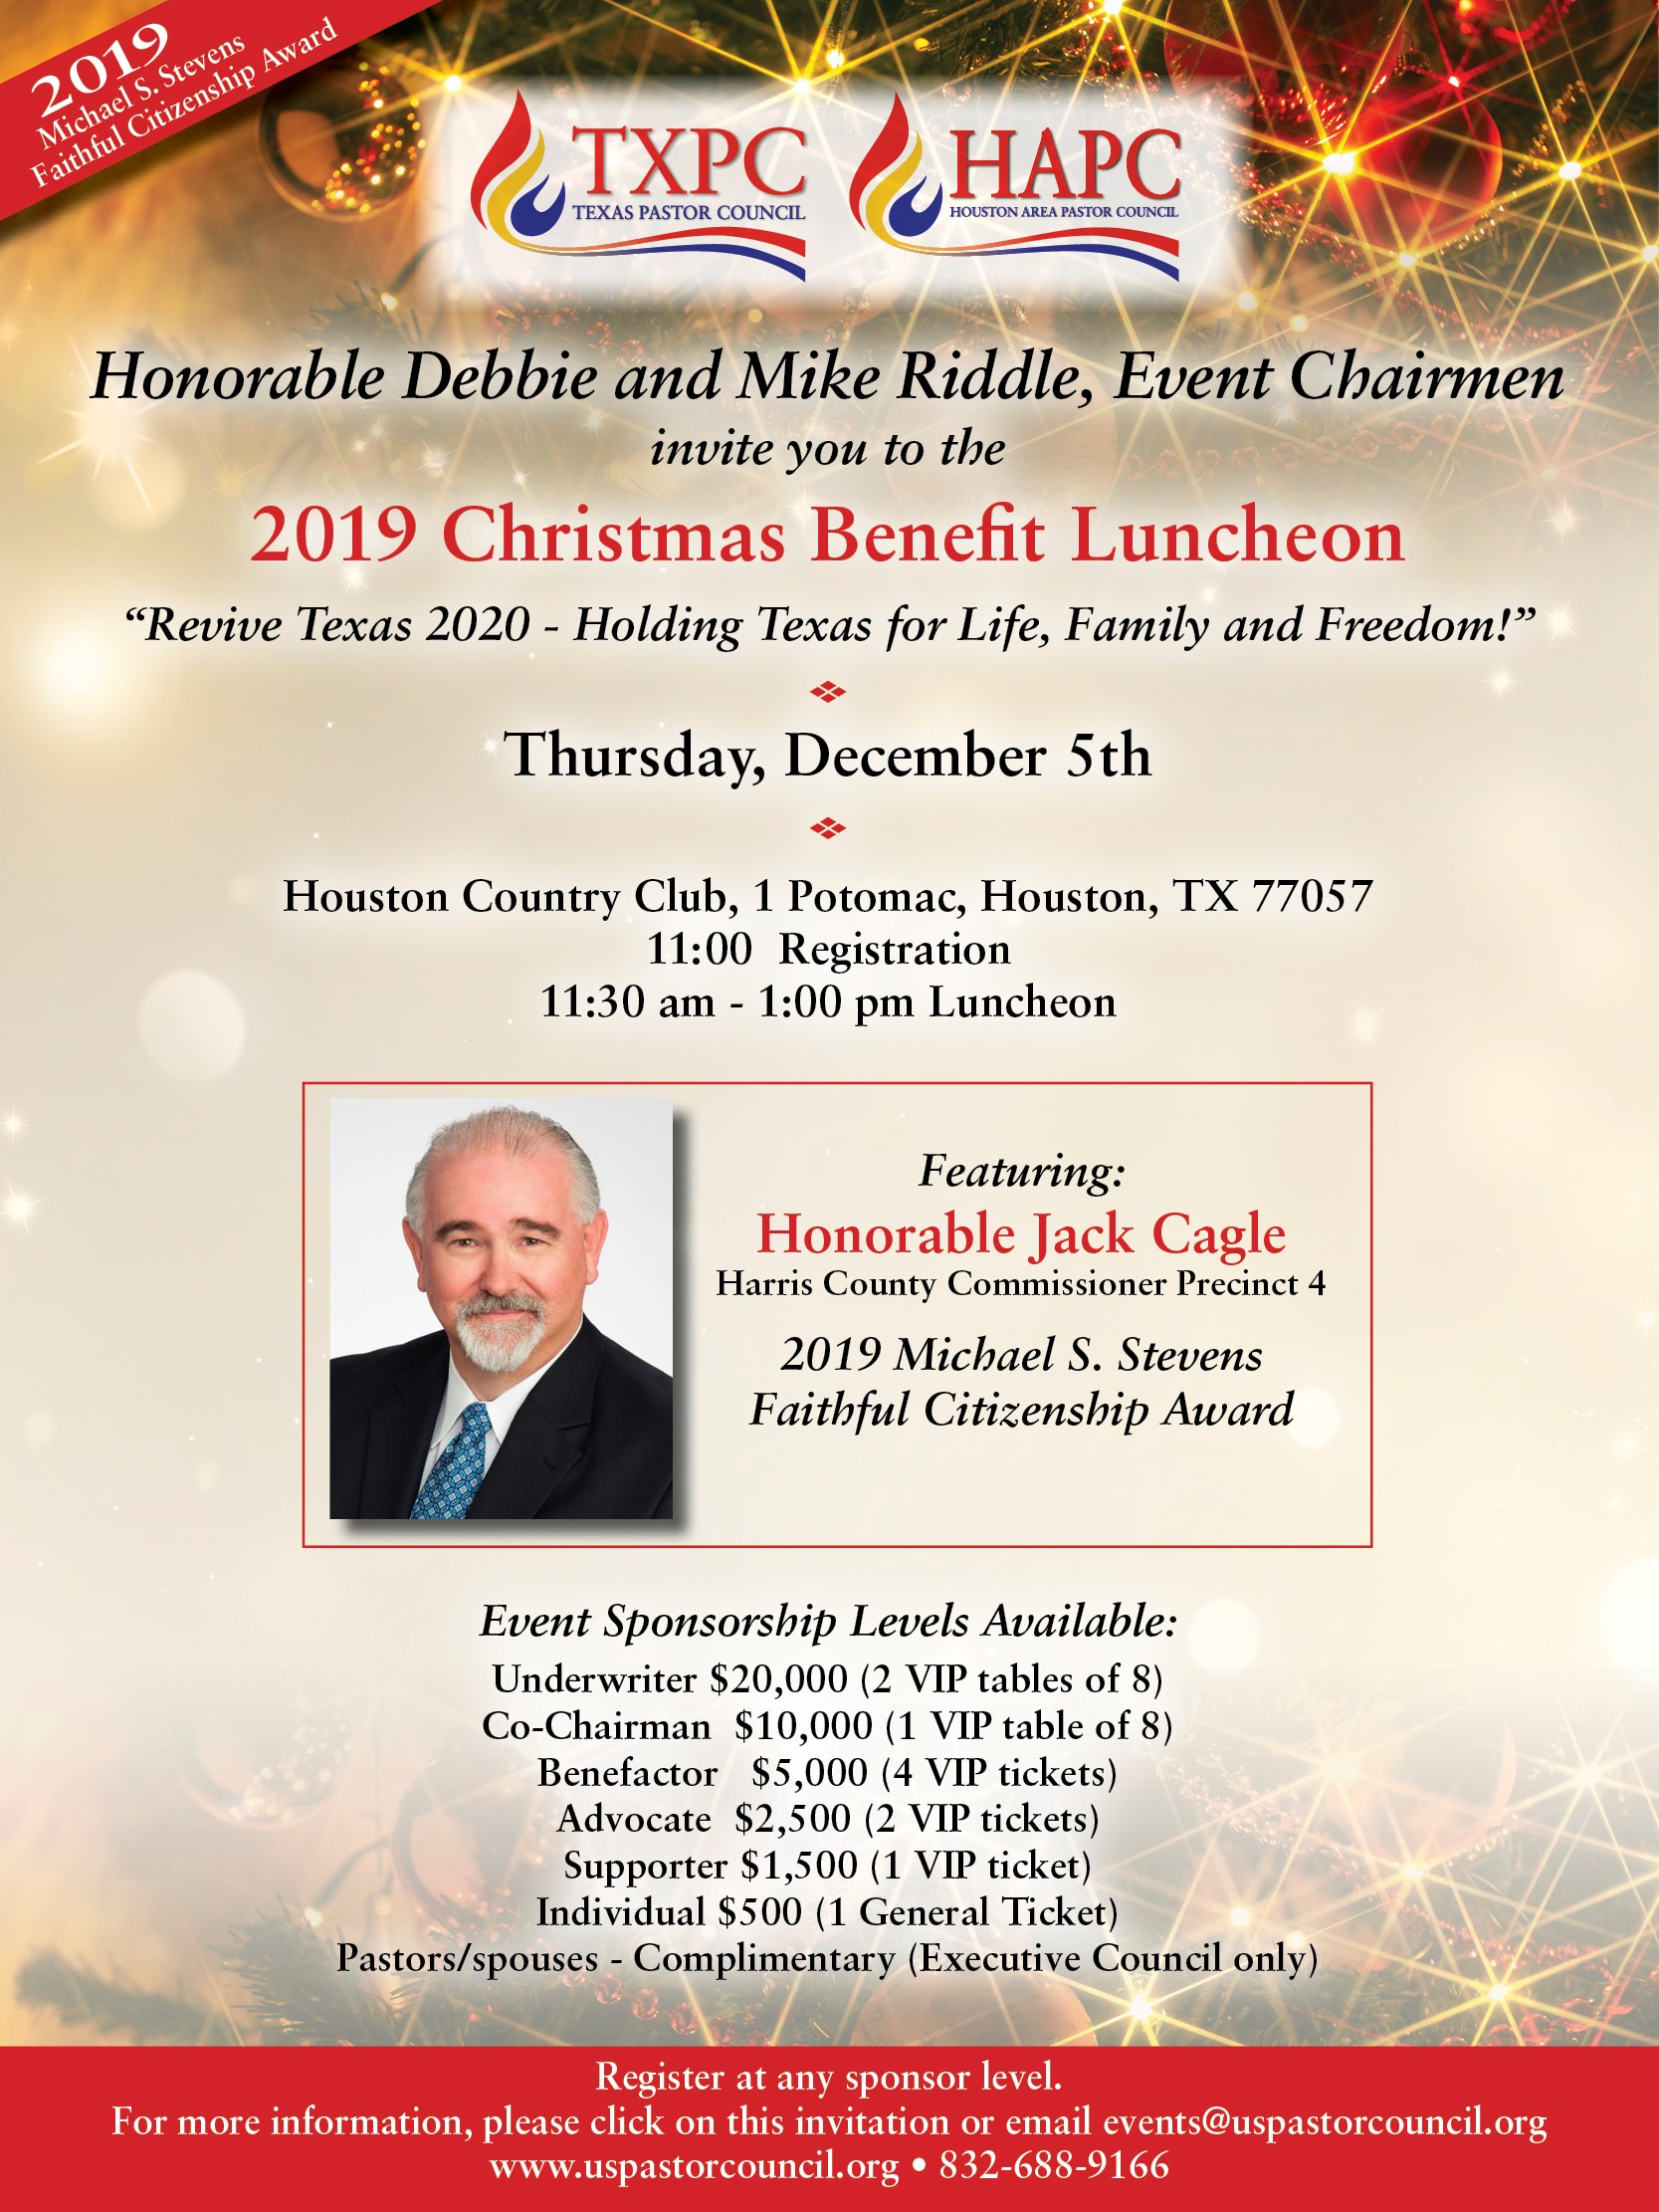 Christmas Events Houston 2019.U S Pastor Council 2019 Txpc Hapc Christmas Benefit